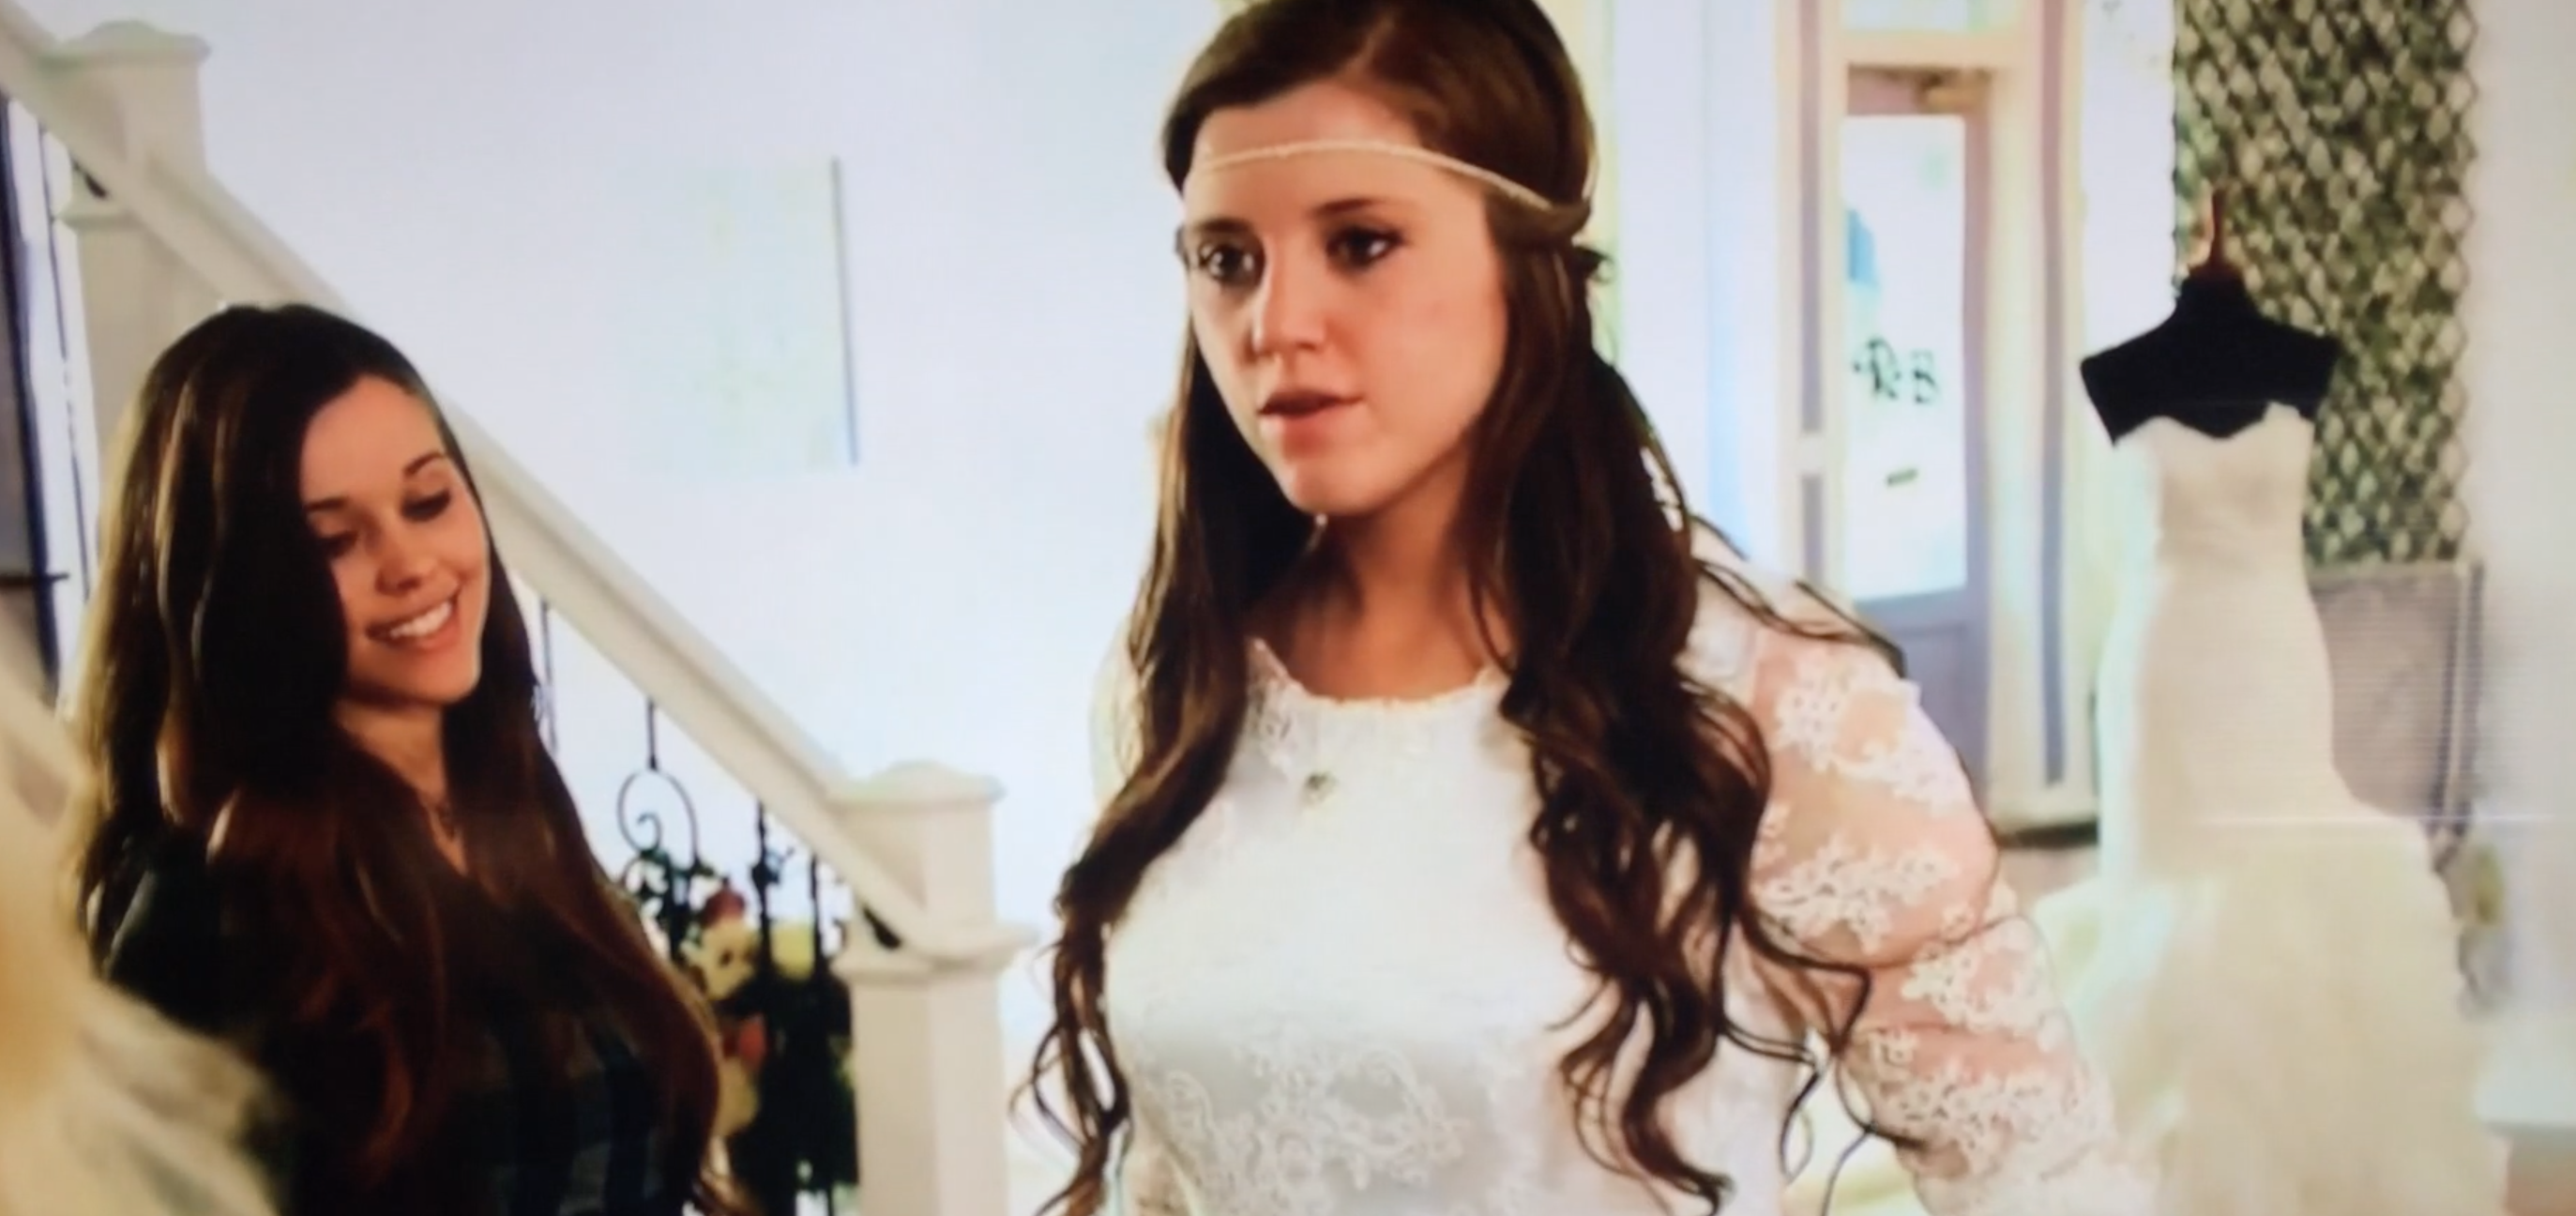 joy duggar wedding dress